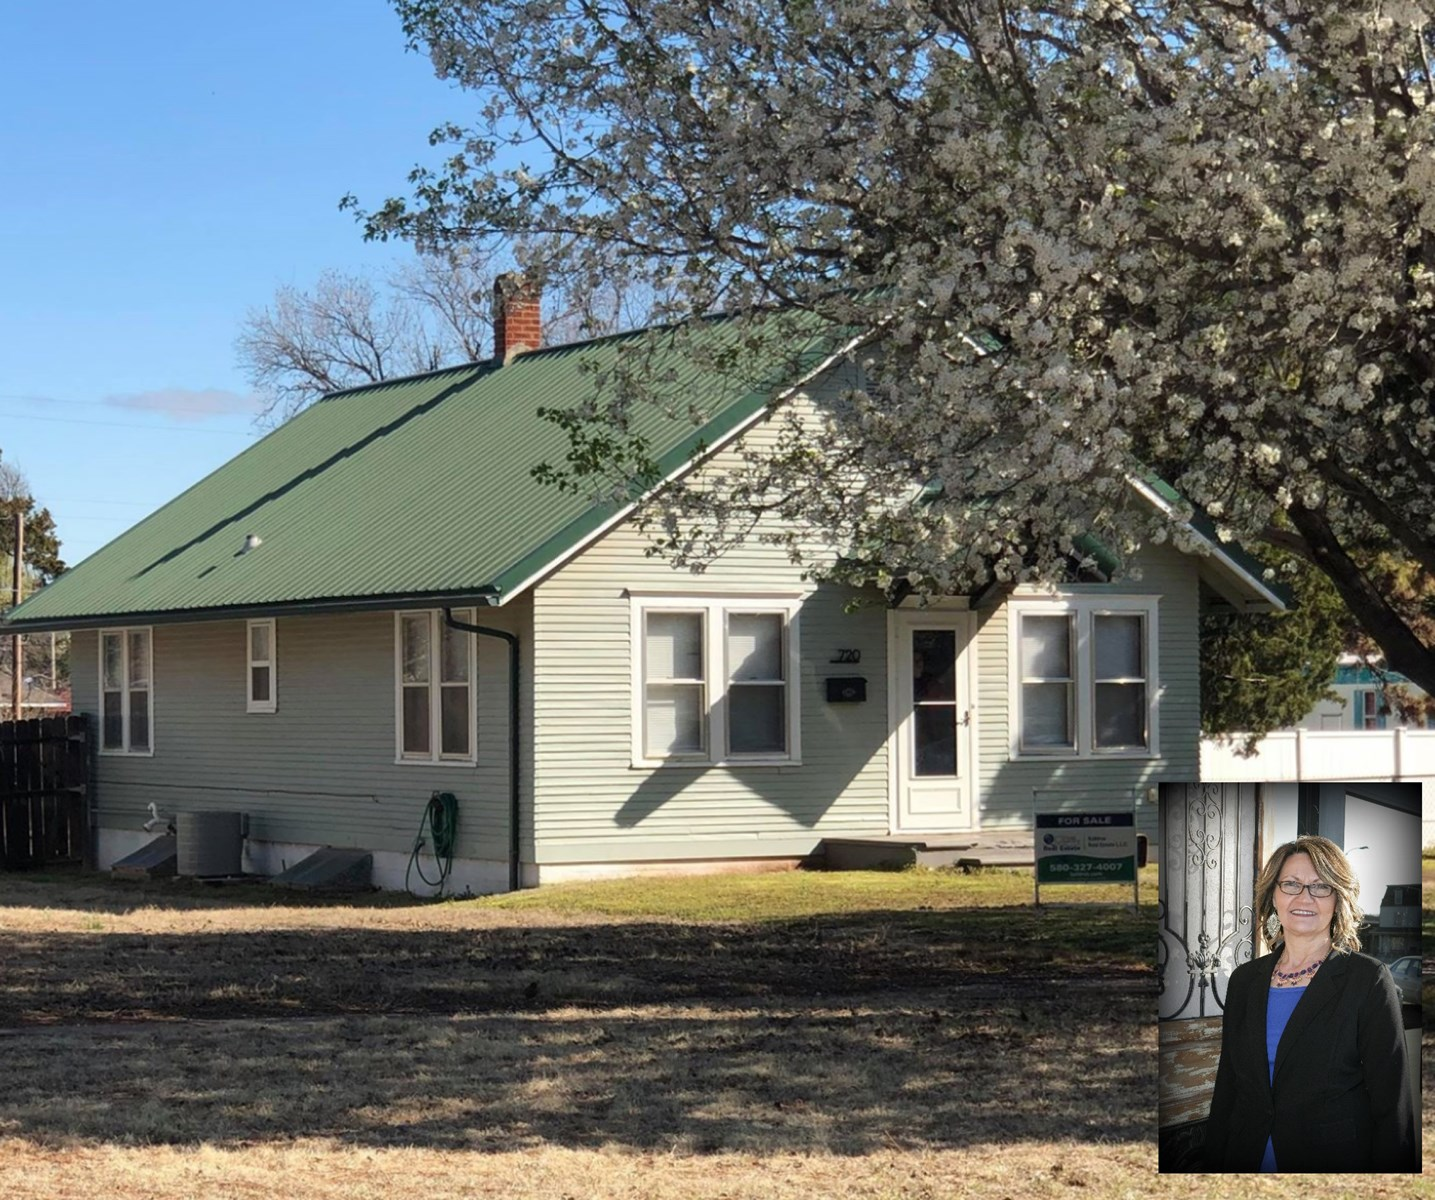 4-5 Bedroom Family Home in Alva, OK with Trailer Parking